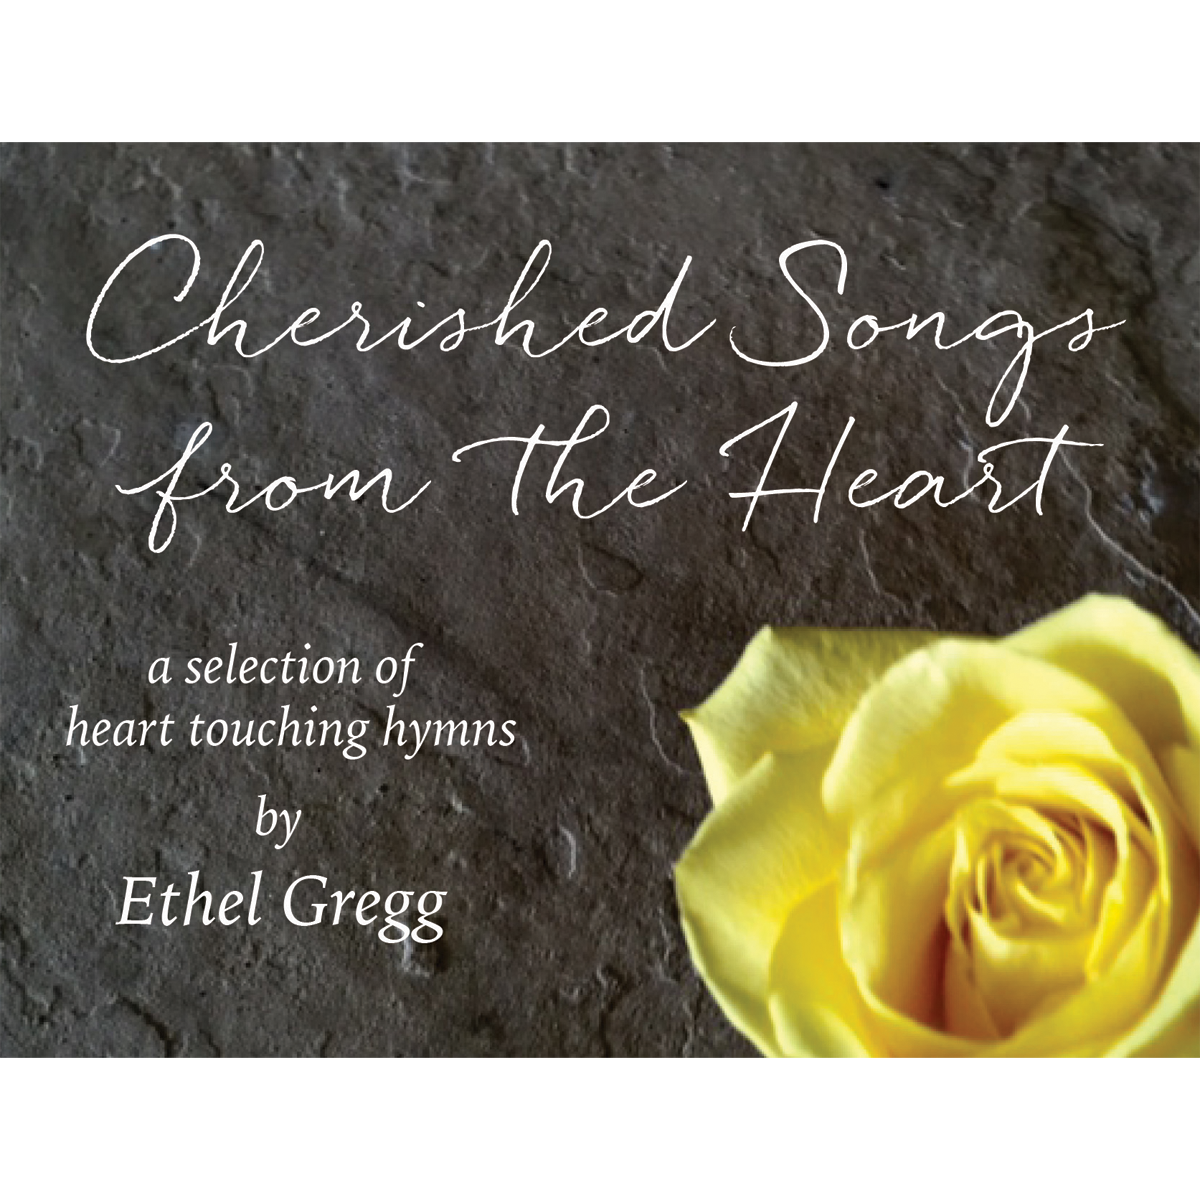 Ethel Gregg's CD Cherished Songs from the Heart. $10.00